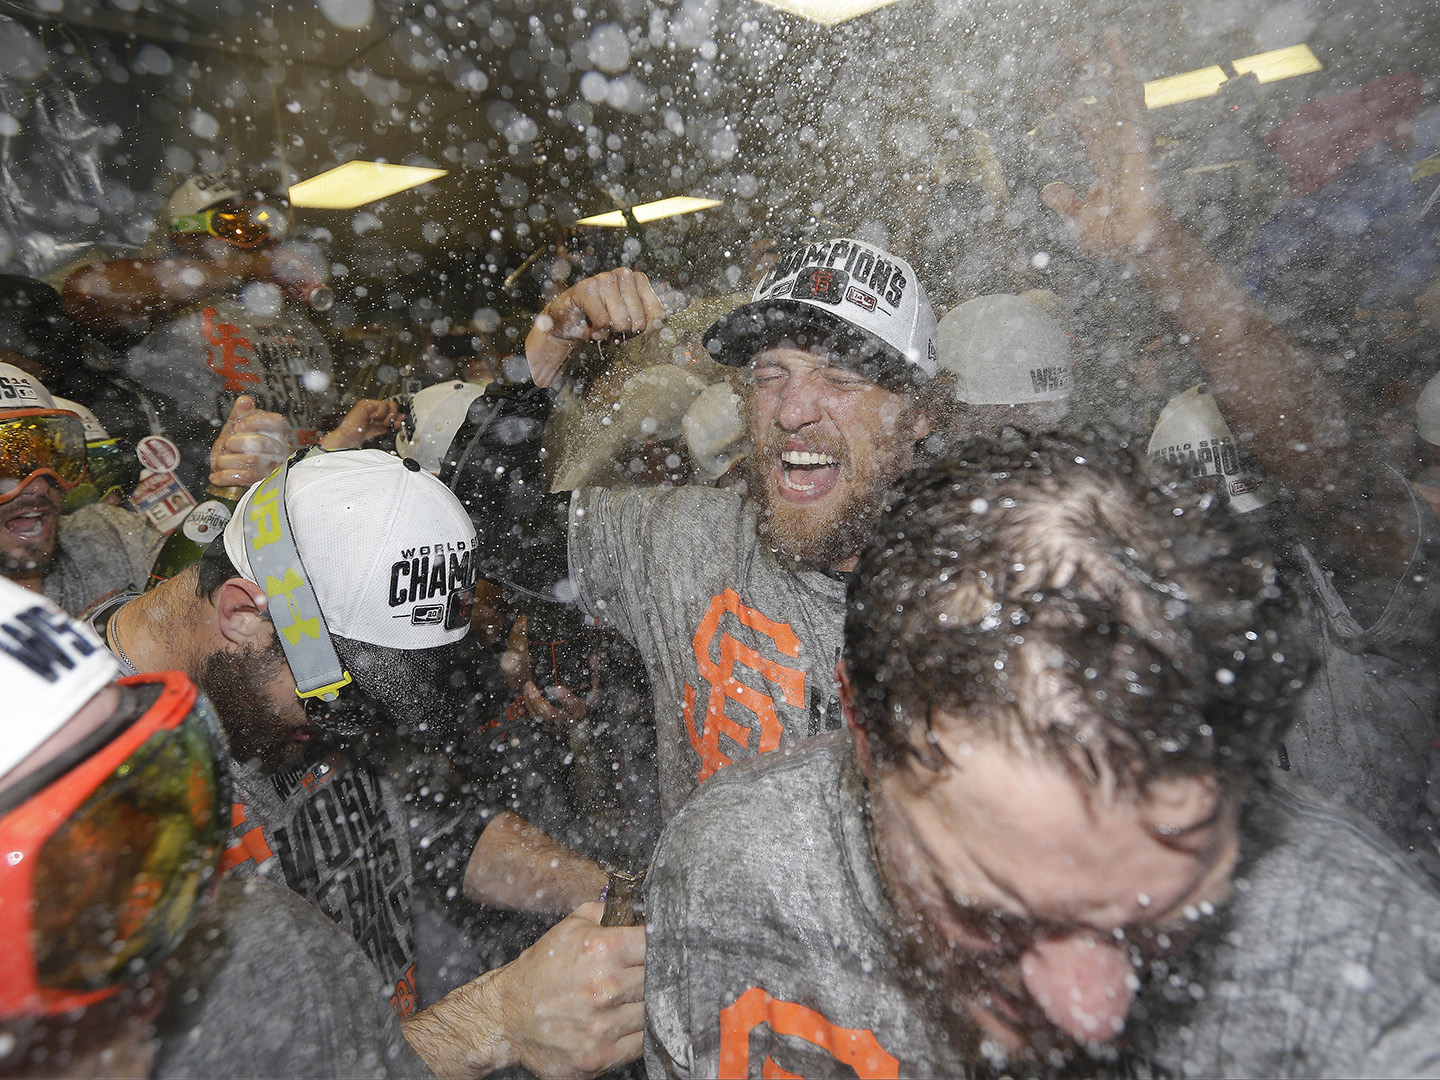 Giants claim World Series in thrilling Game 7